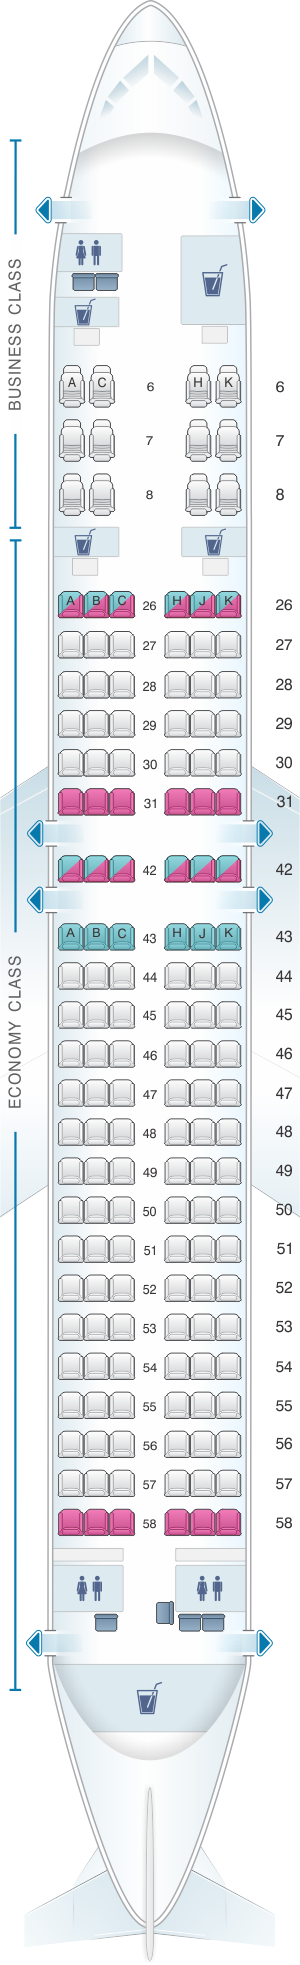 Seat map for Royal Brunei Airlines Airbus A320